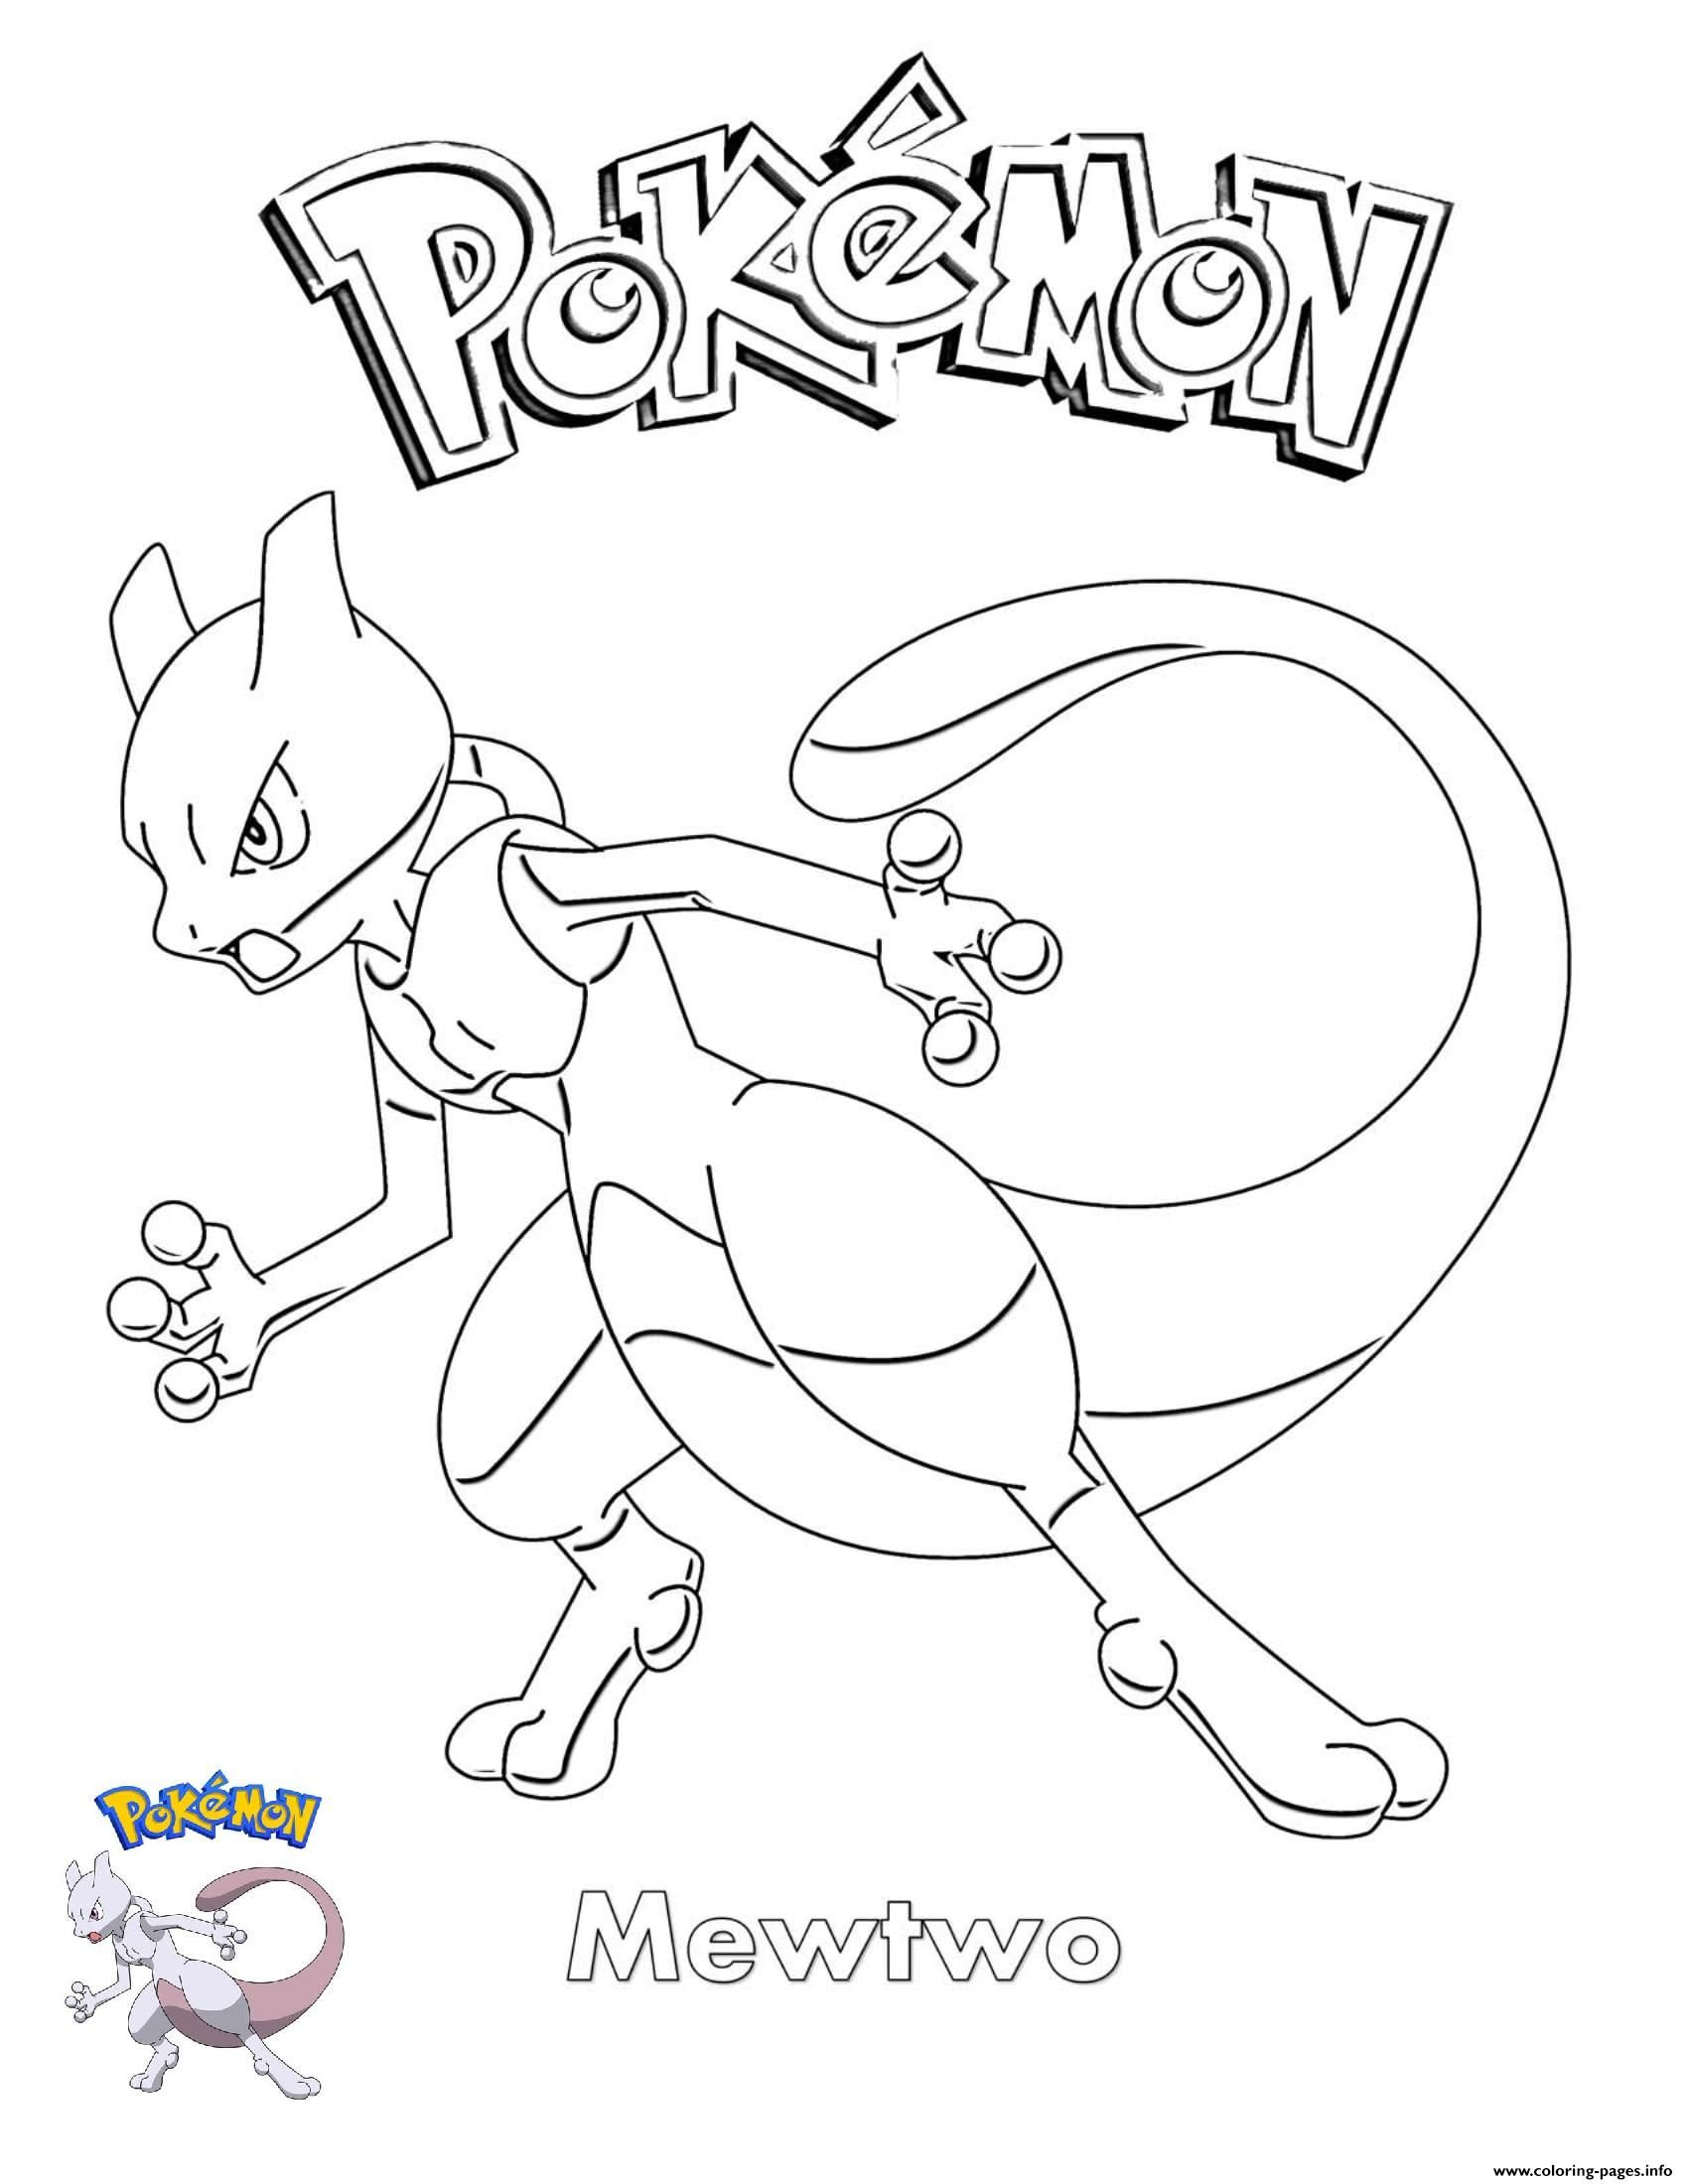 Print Mewtwo Pokemon coloring pages